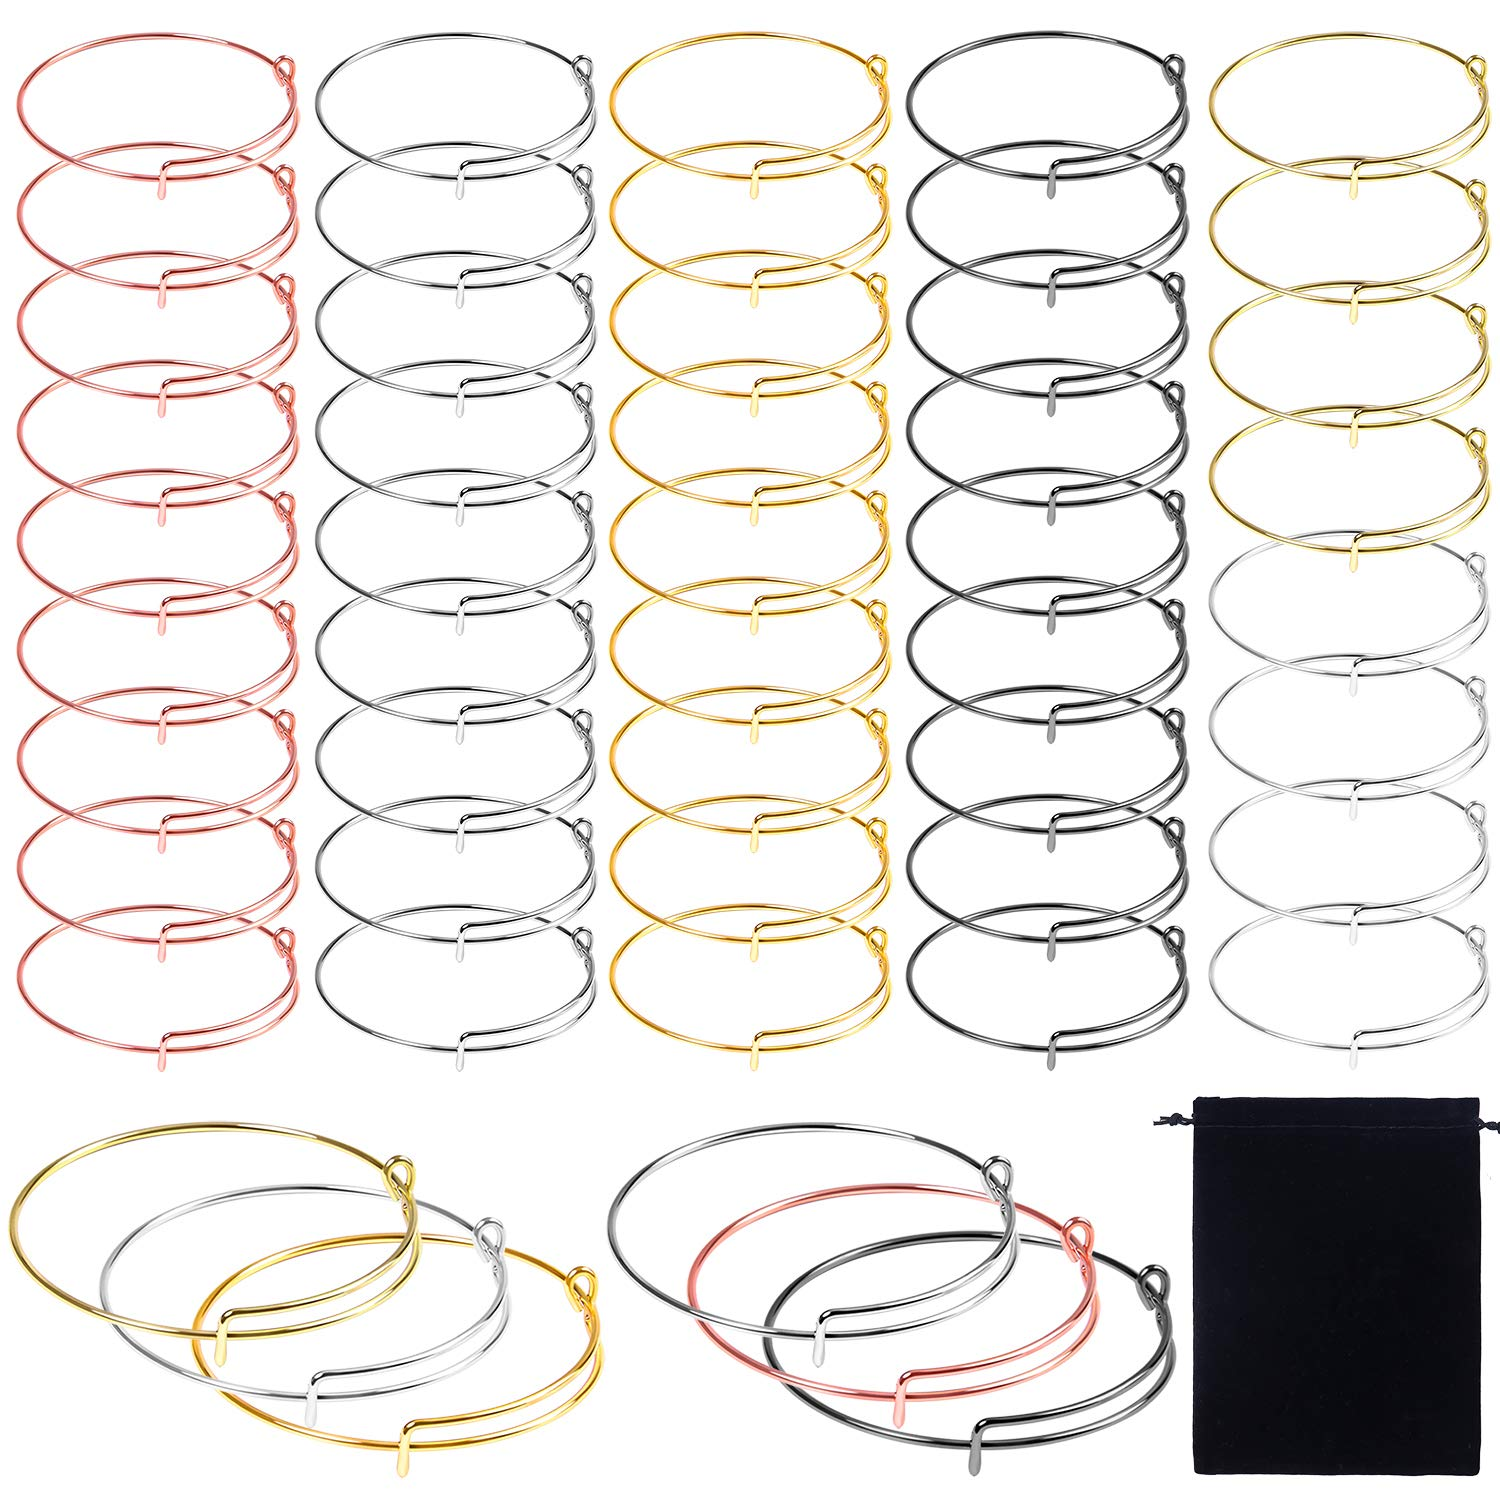 Ruisita 50 Pieces Expandable Bangle Adjustable Wire Bracelets Blank Bangle Bracelets with Storage Bag for DIY Jewelry Making Charms Bracelets (Mixed 6 Colors A) by Ruisita